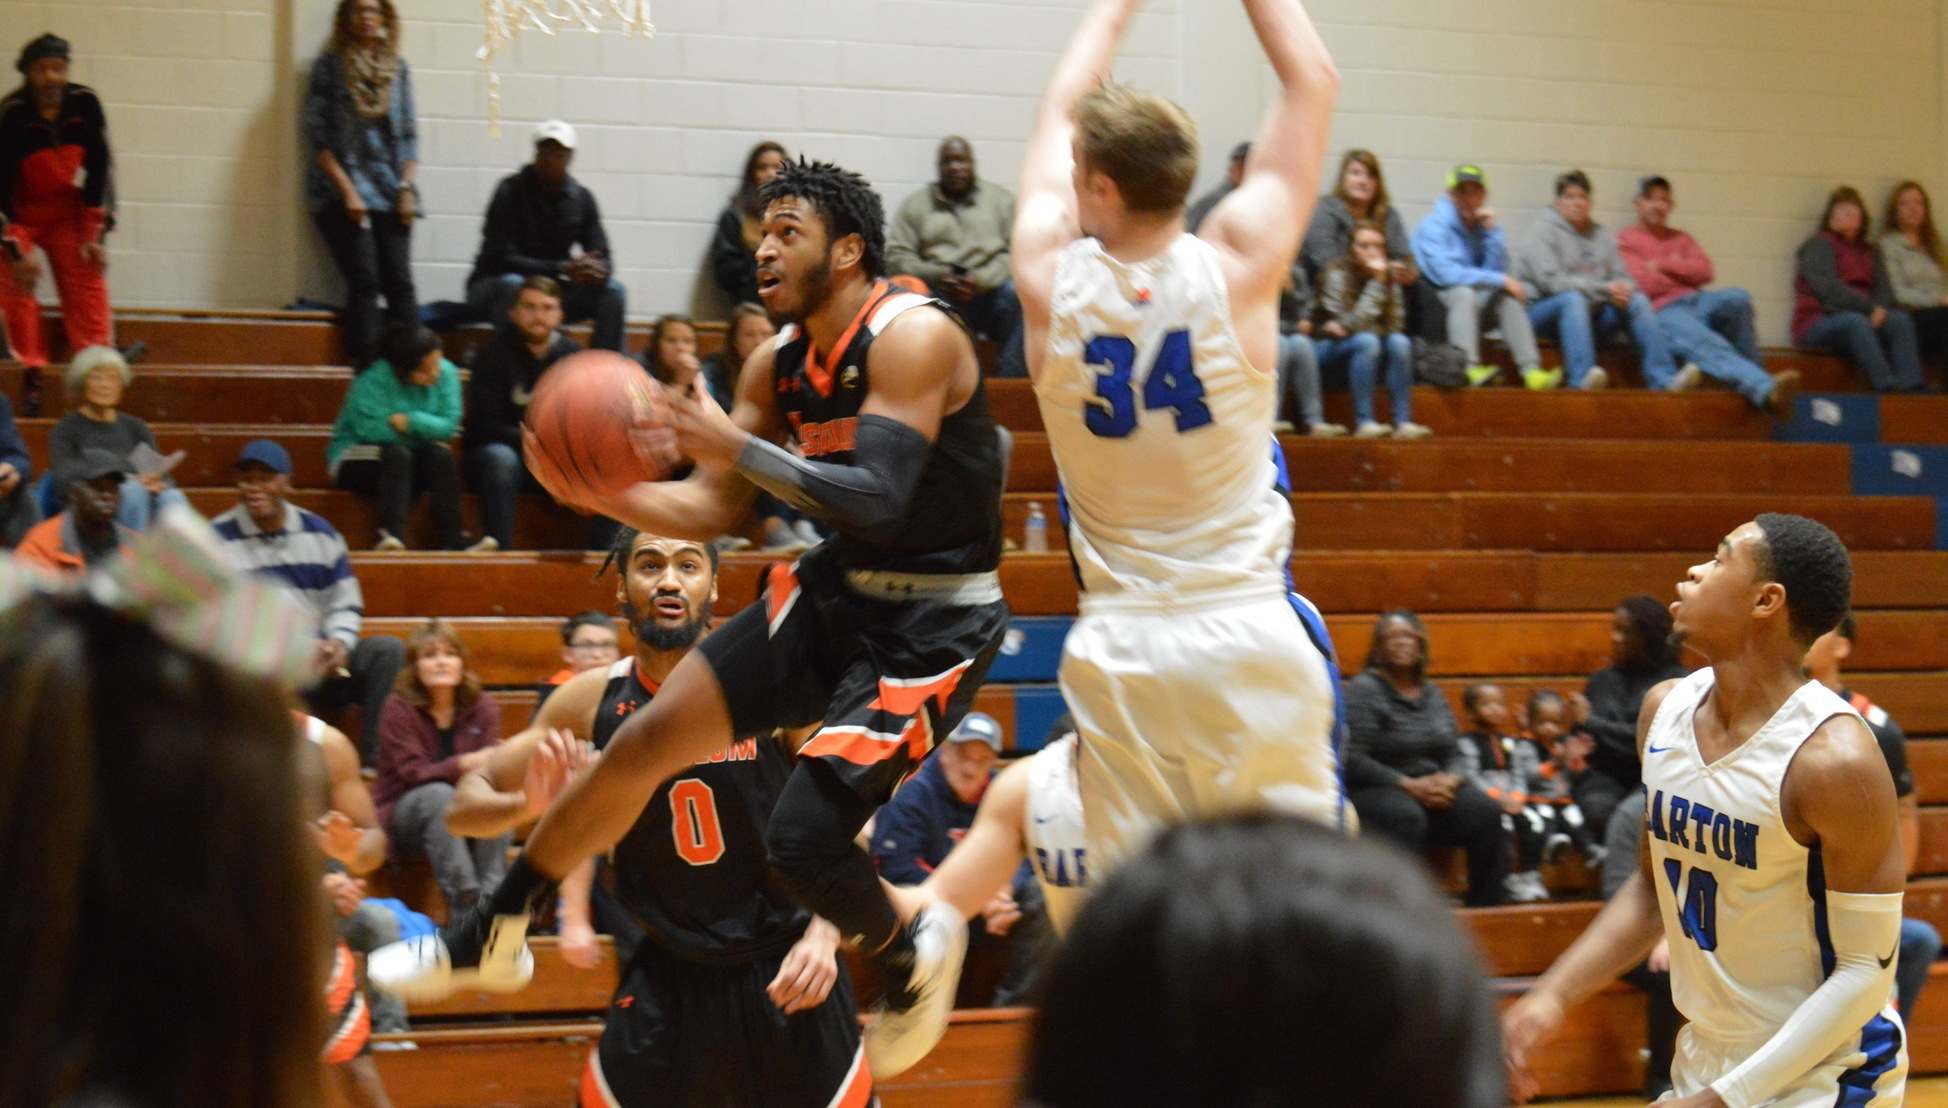 Tariq Jenkins scored 17 points and converted a three-point play late in the game in Tusculum's 91-87 win at Barton